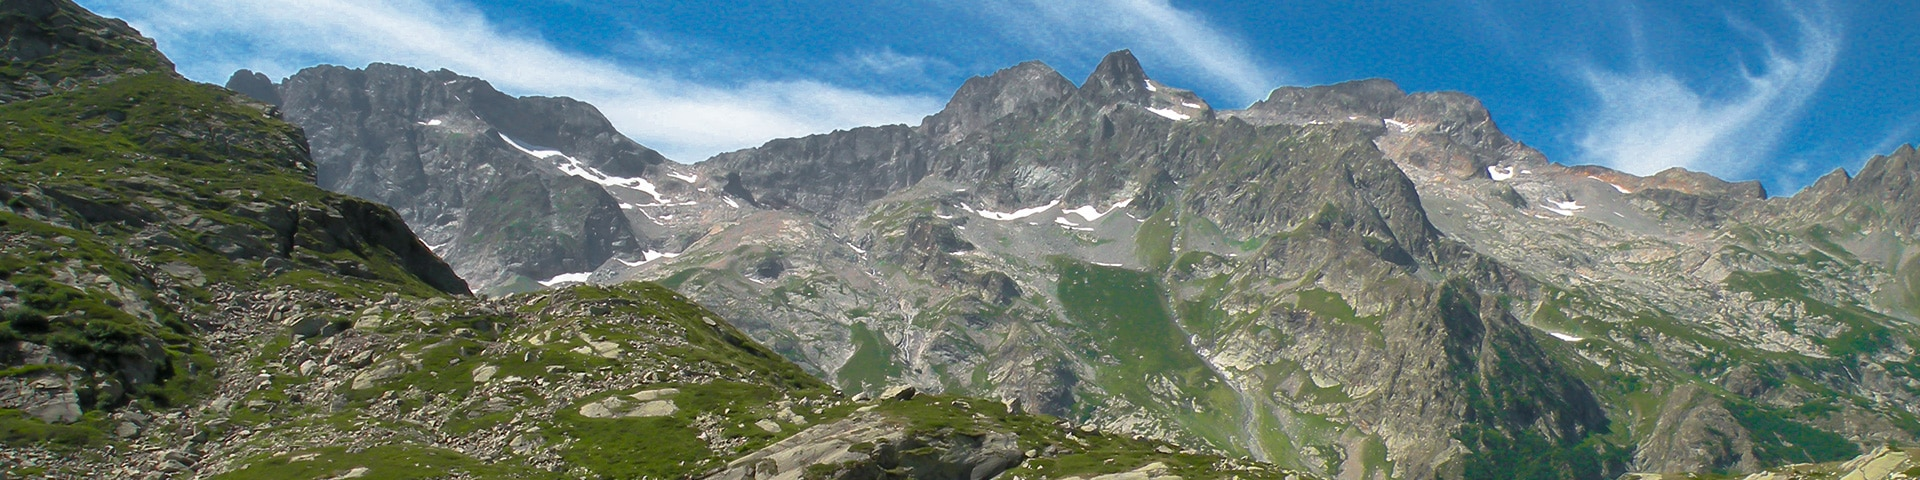 Panorama from the Lago del Vei del Bouc hike in Alpi Marittime National Park, Italy